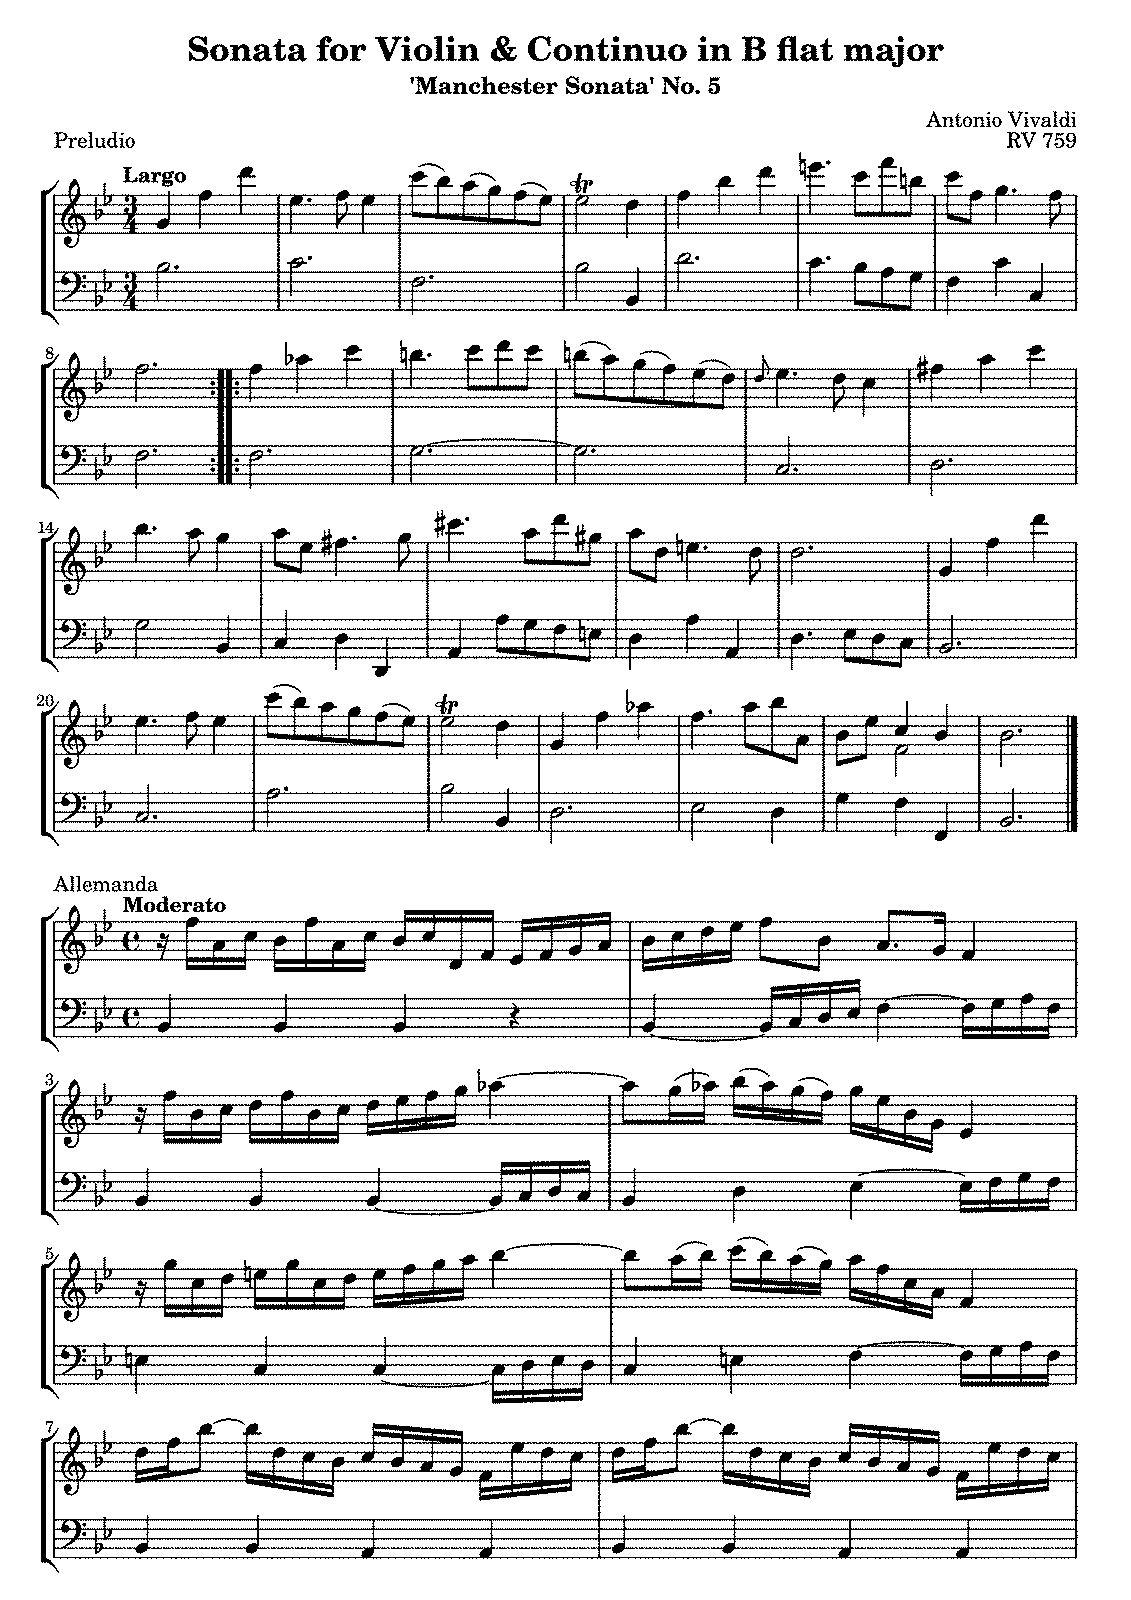 PMLP122909-vivaldi sonata for violin rv759.pdf